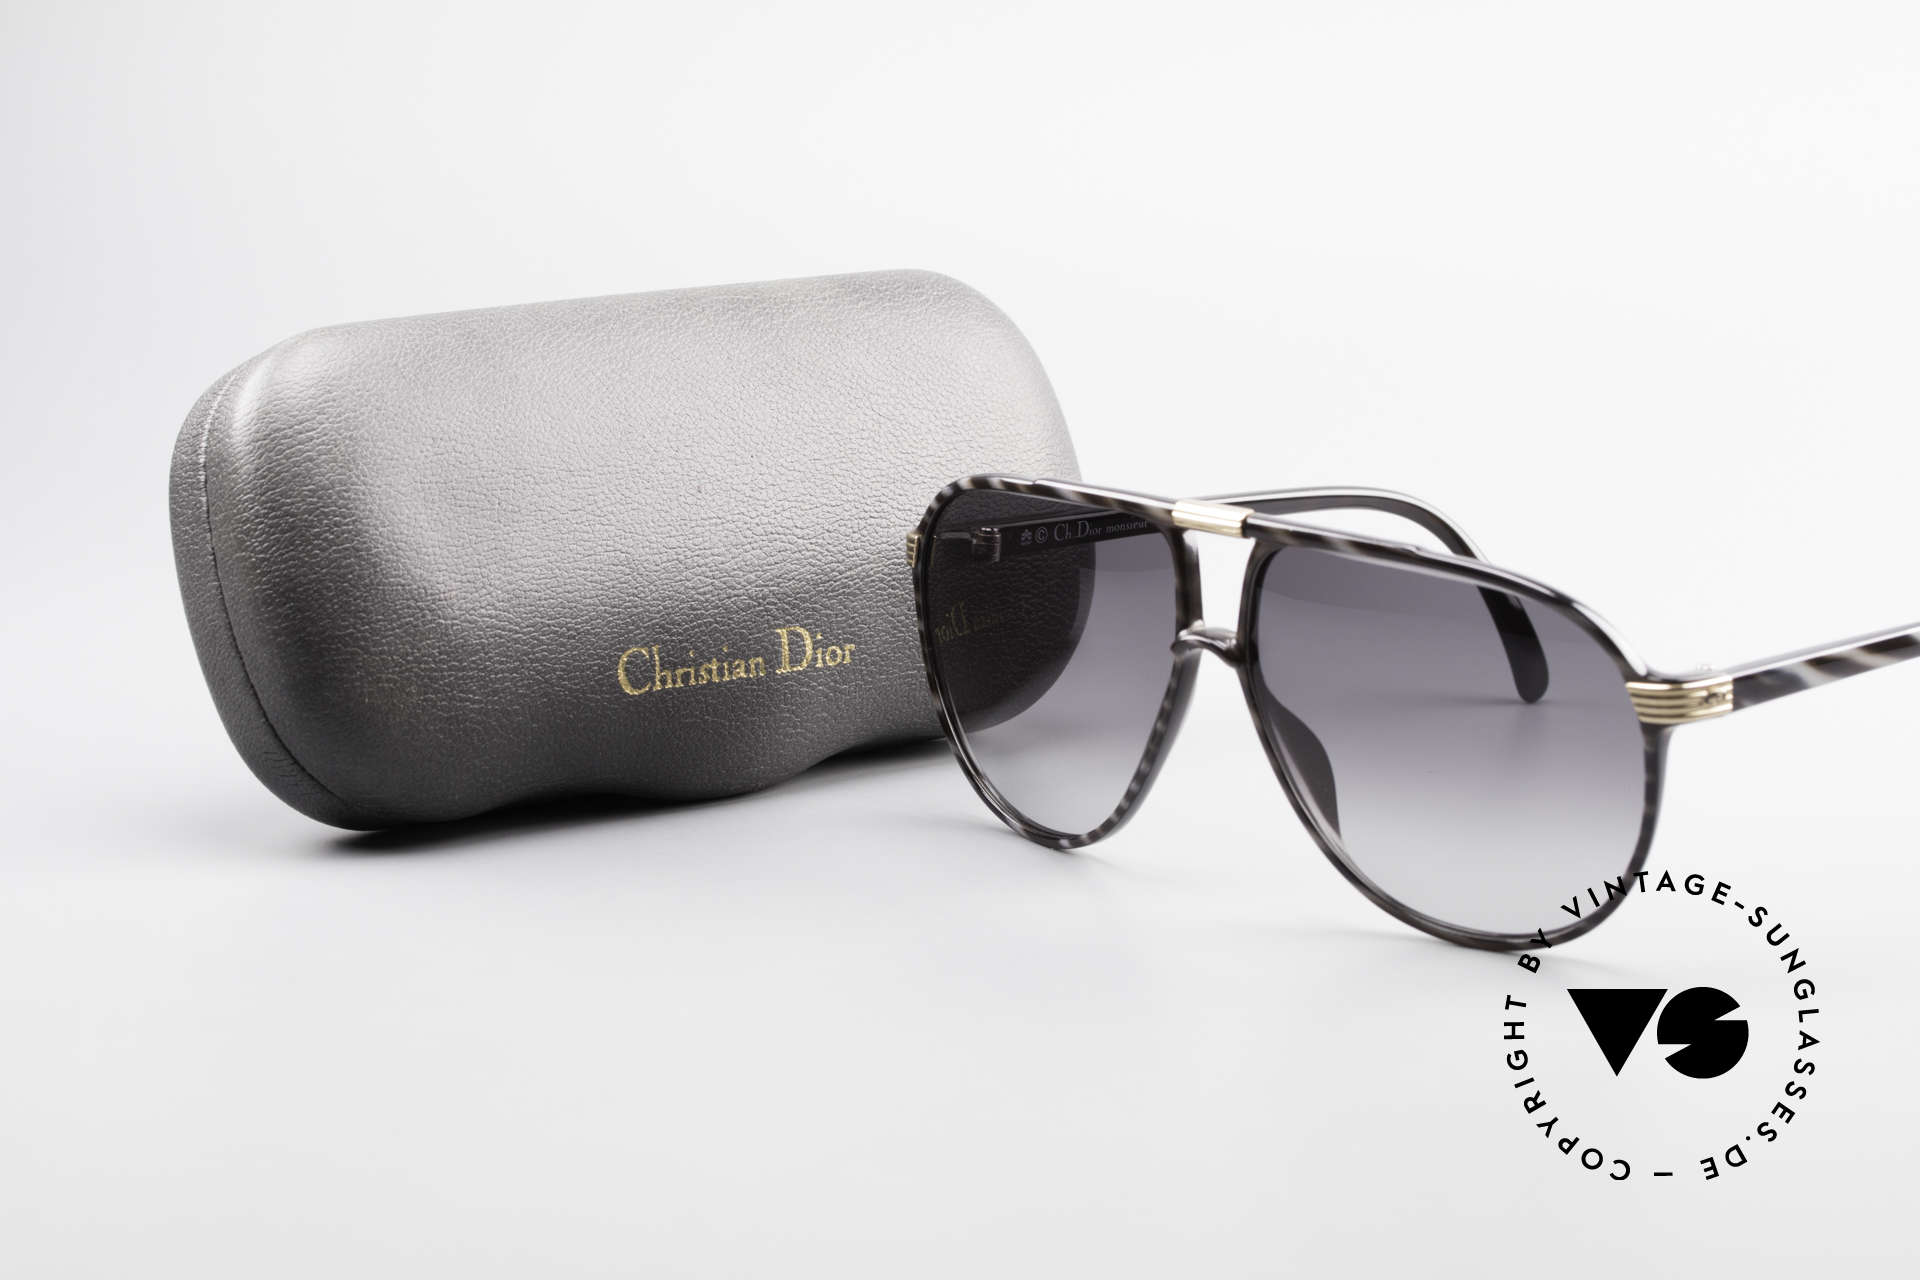 Christian Dior 2300 Optyl Monsieur Sunglasses, frame in size 60/11 with noble 'horn/black' coloring, Made for Men